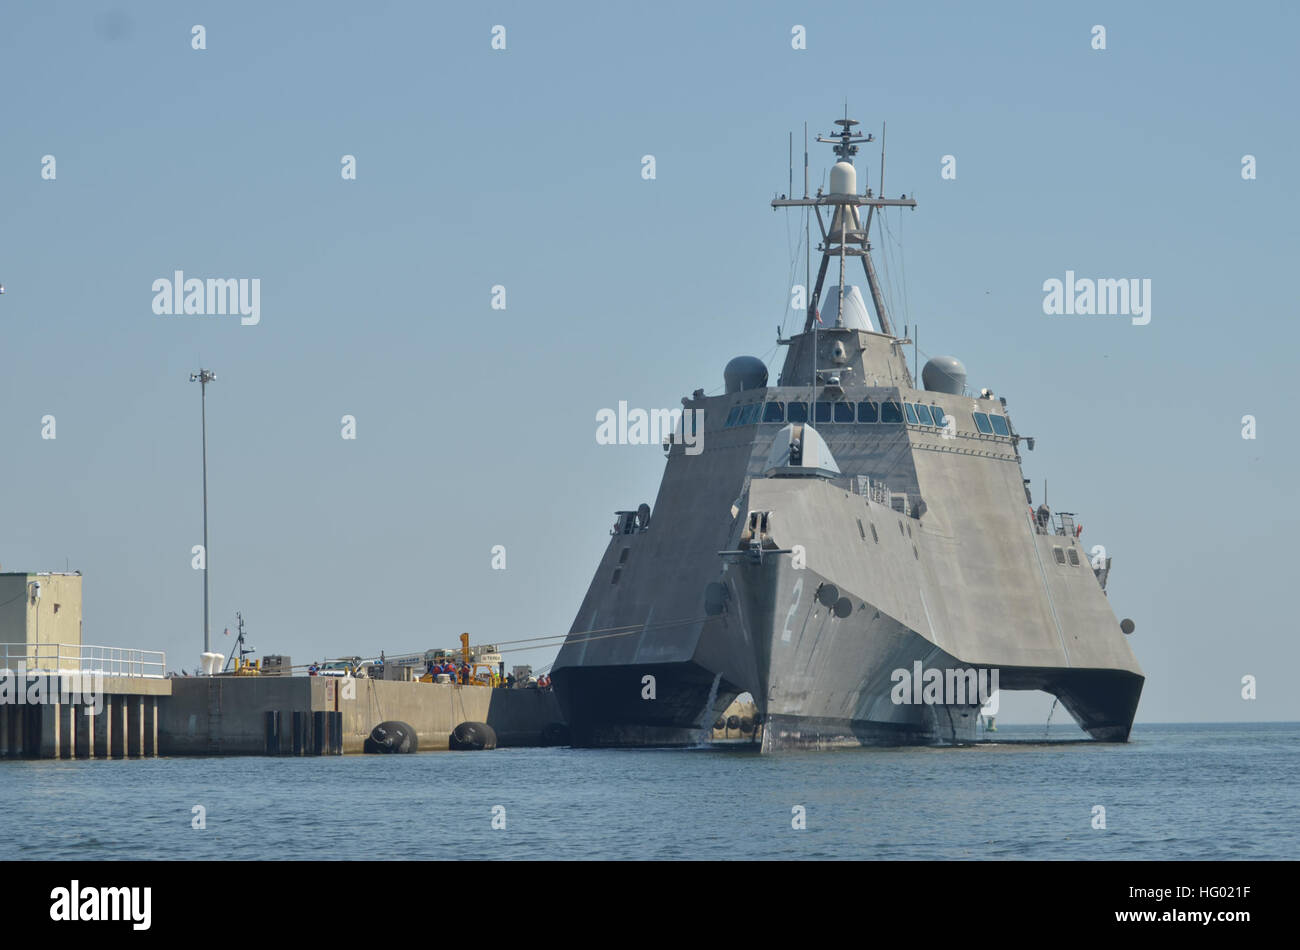 110912-N-AU606-002 PENSACOLA, Fla. (Sept. 12, 2011) The littoral combat ship USS Independence (LCS 2) makes preparations Stock Photo